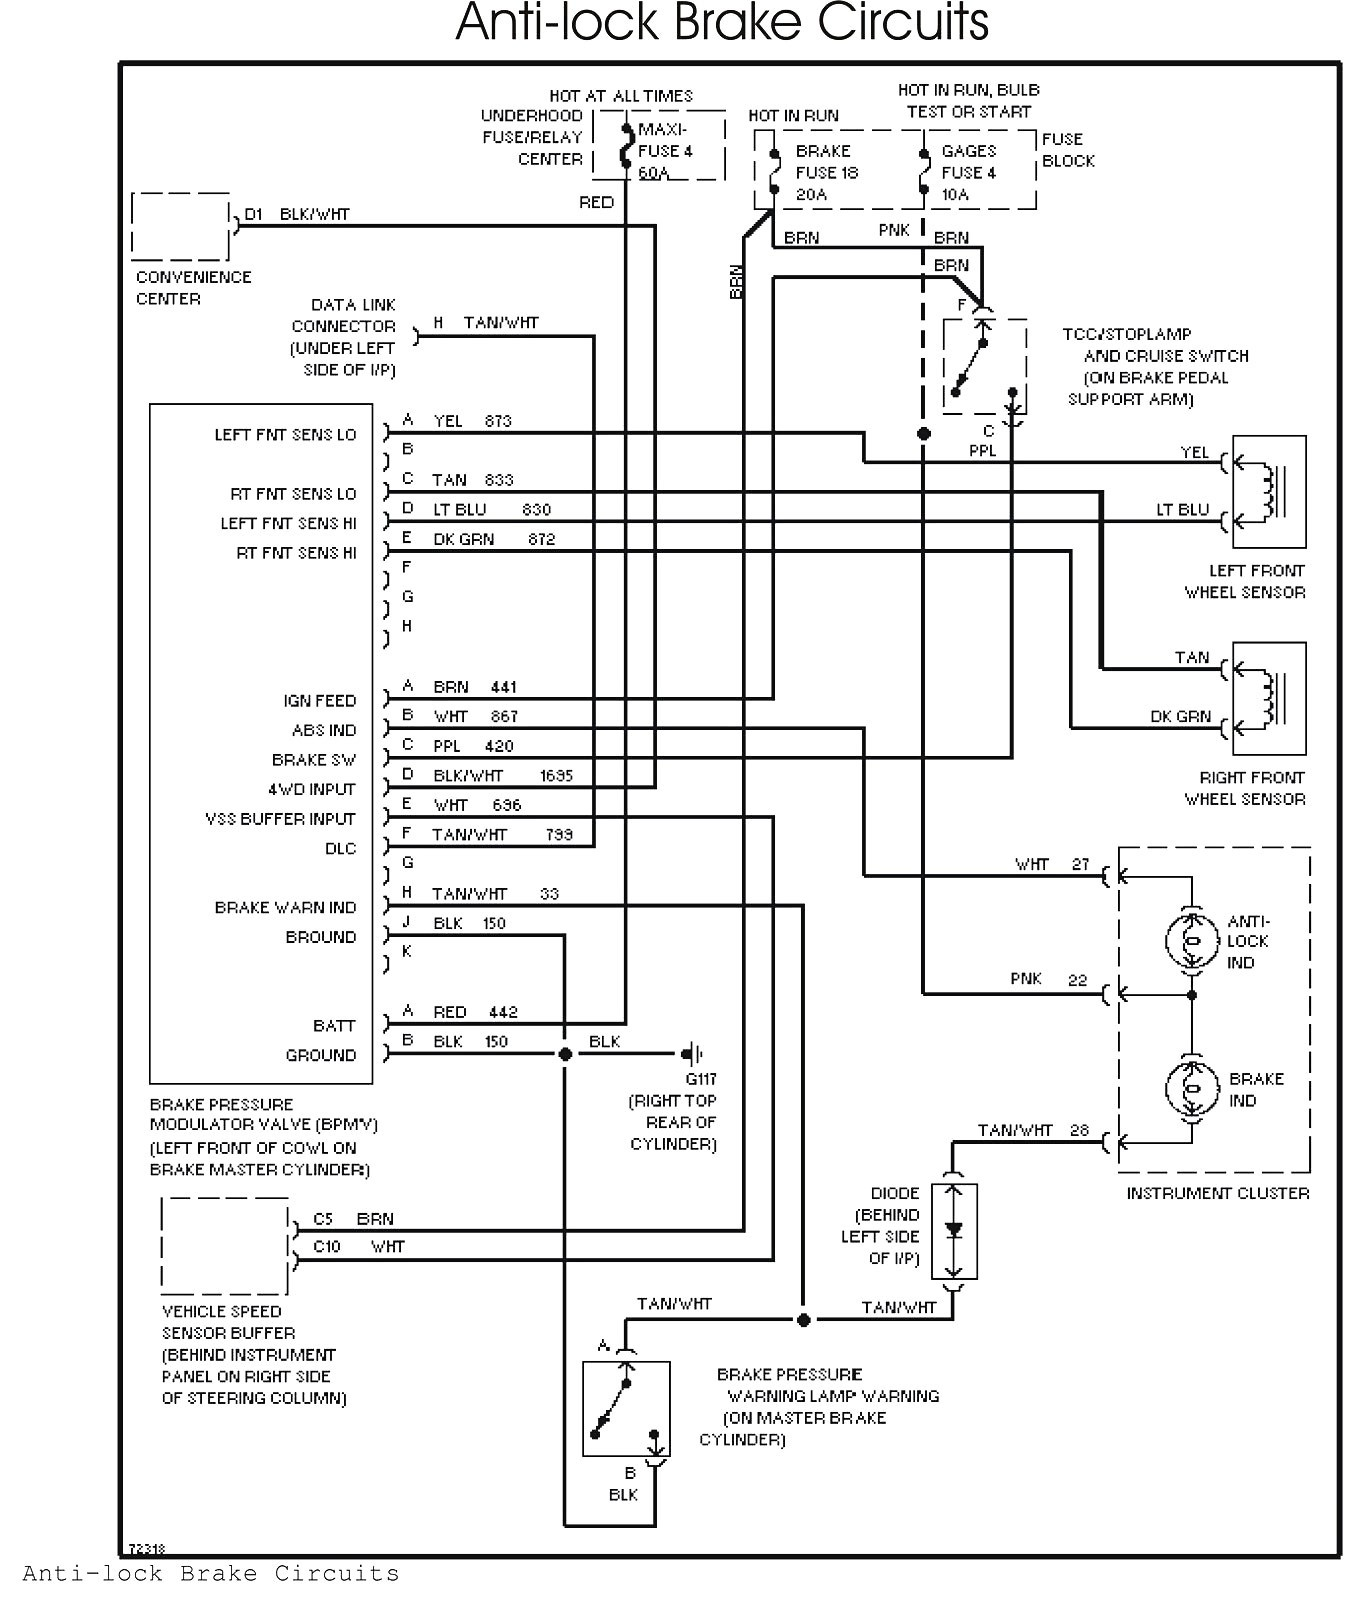 pierce fire truck wiring diagram wiring diagram as well